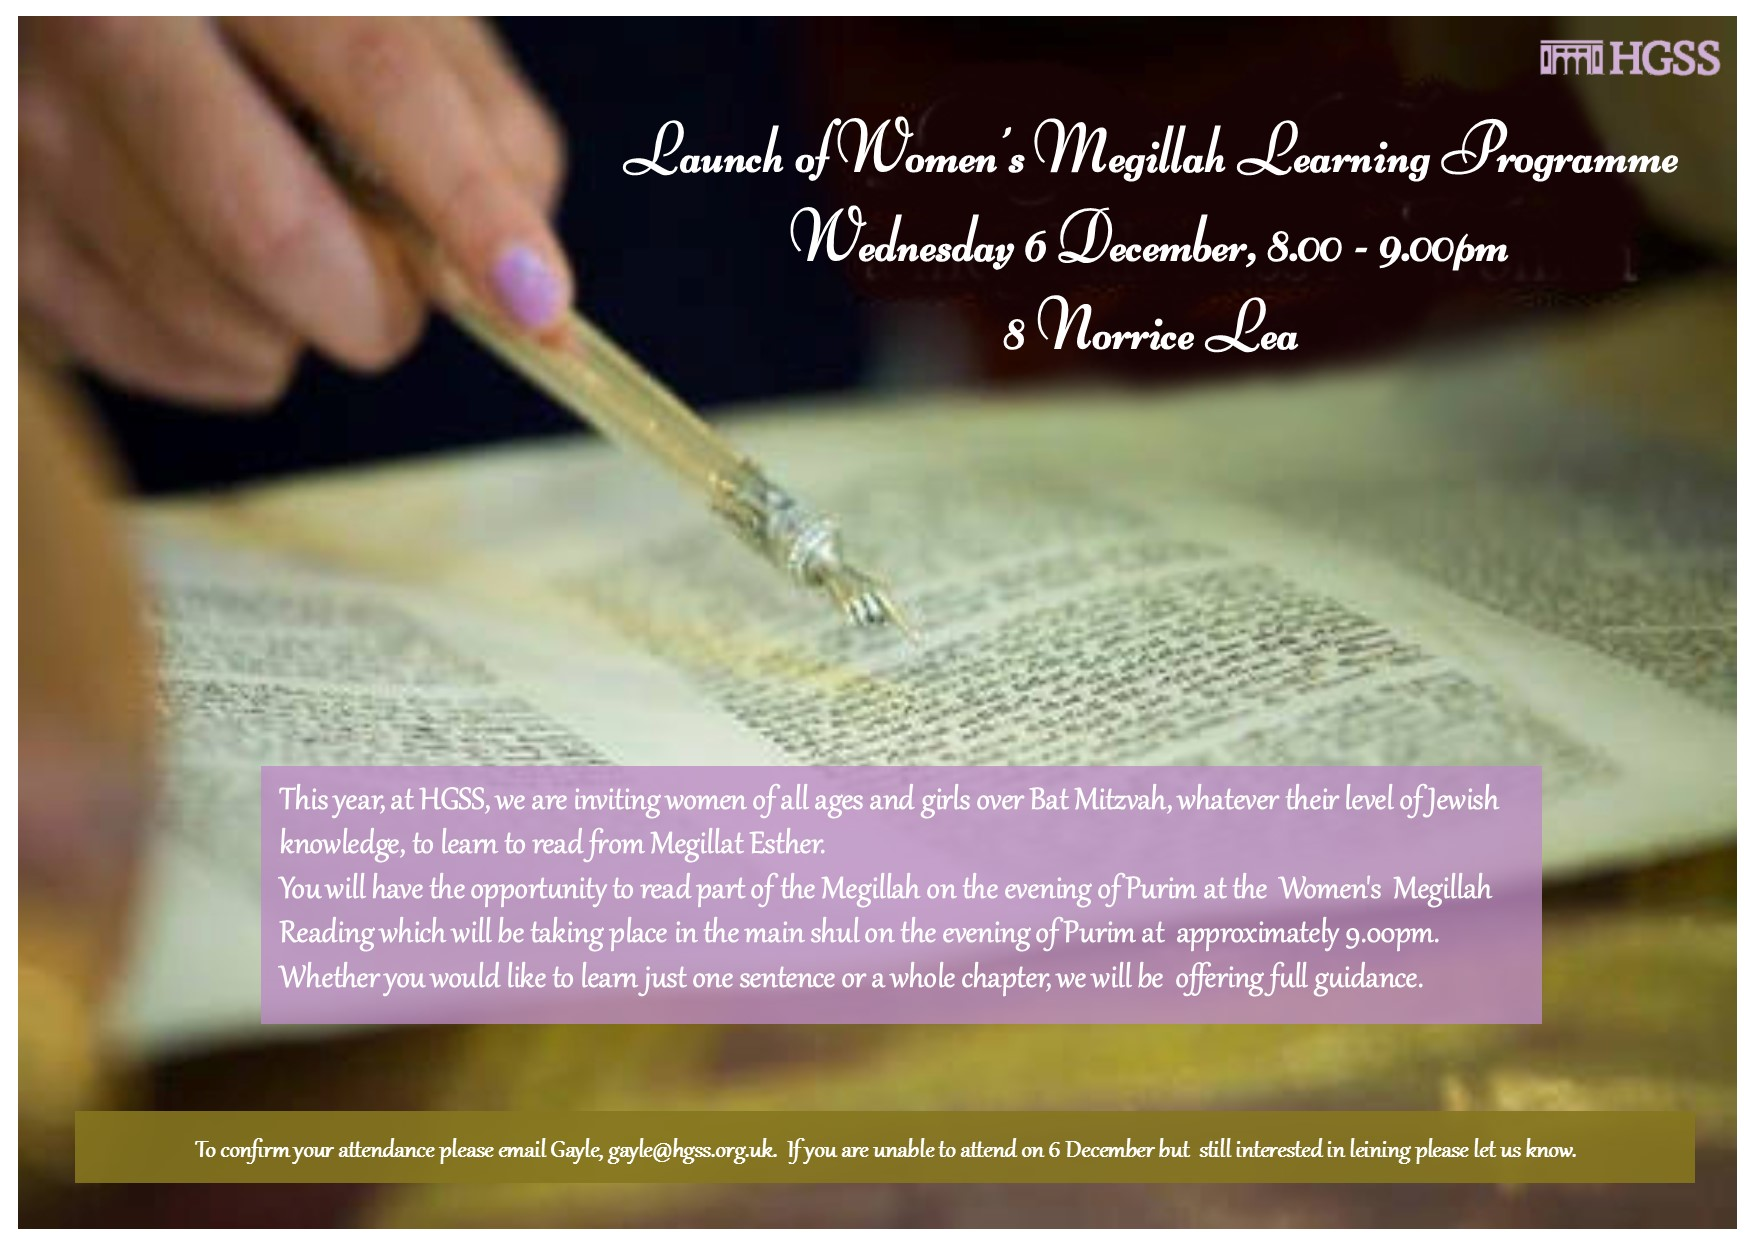 Launch of Women's Megillah Learning Programme @ 8 Norrice Lea